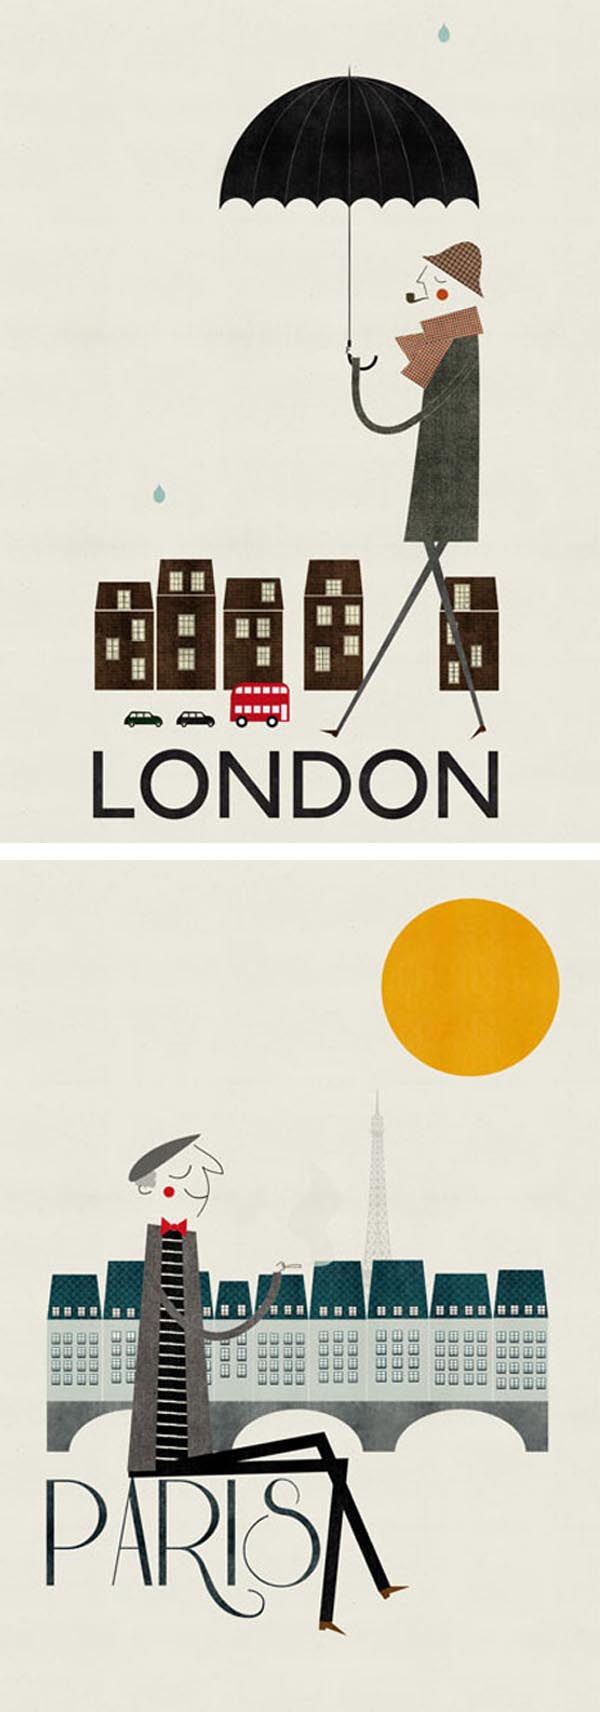 londres-paris posters